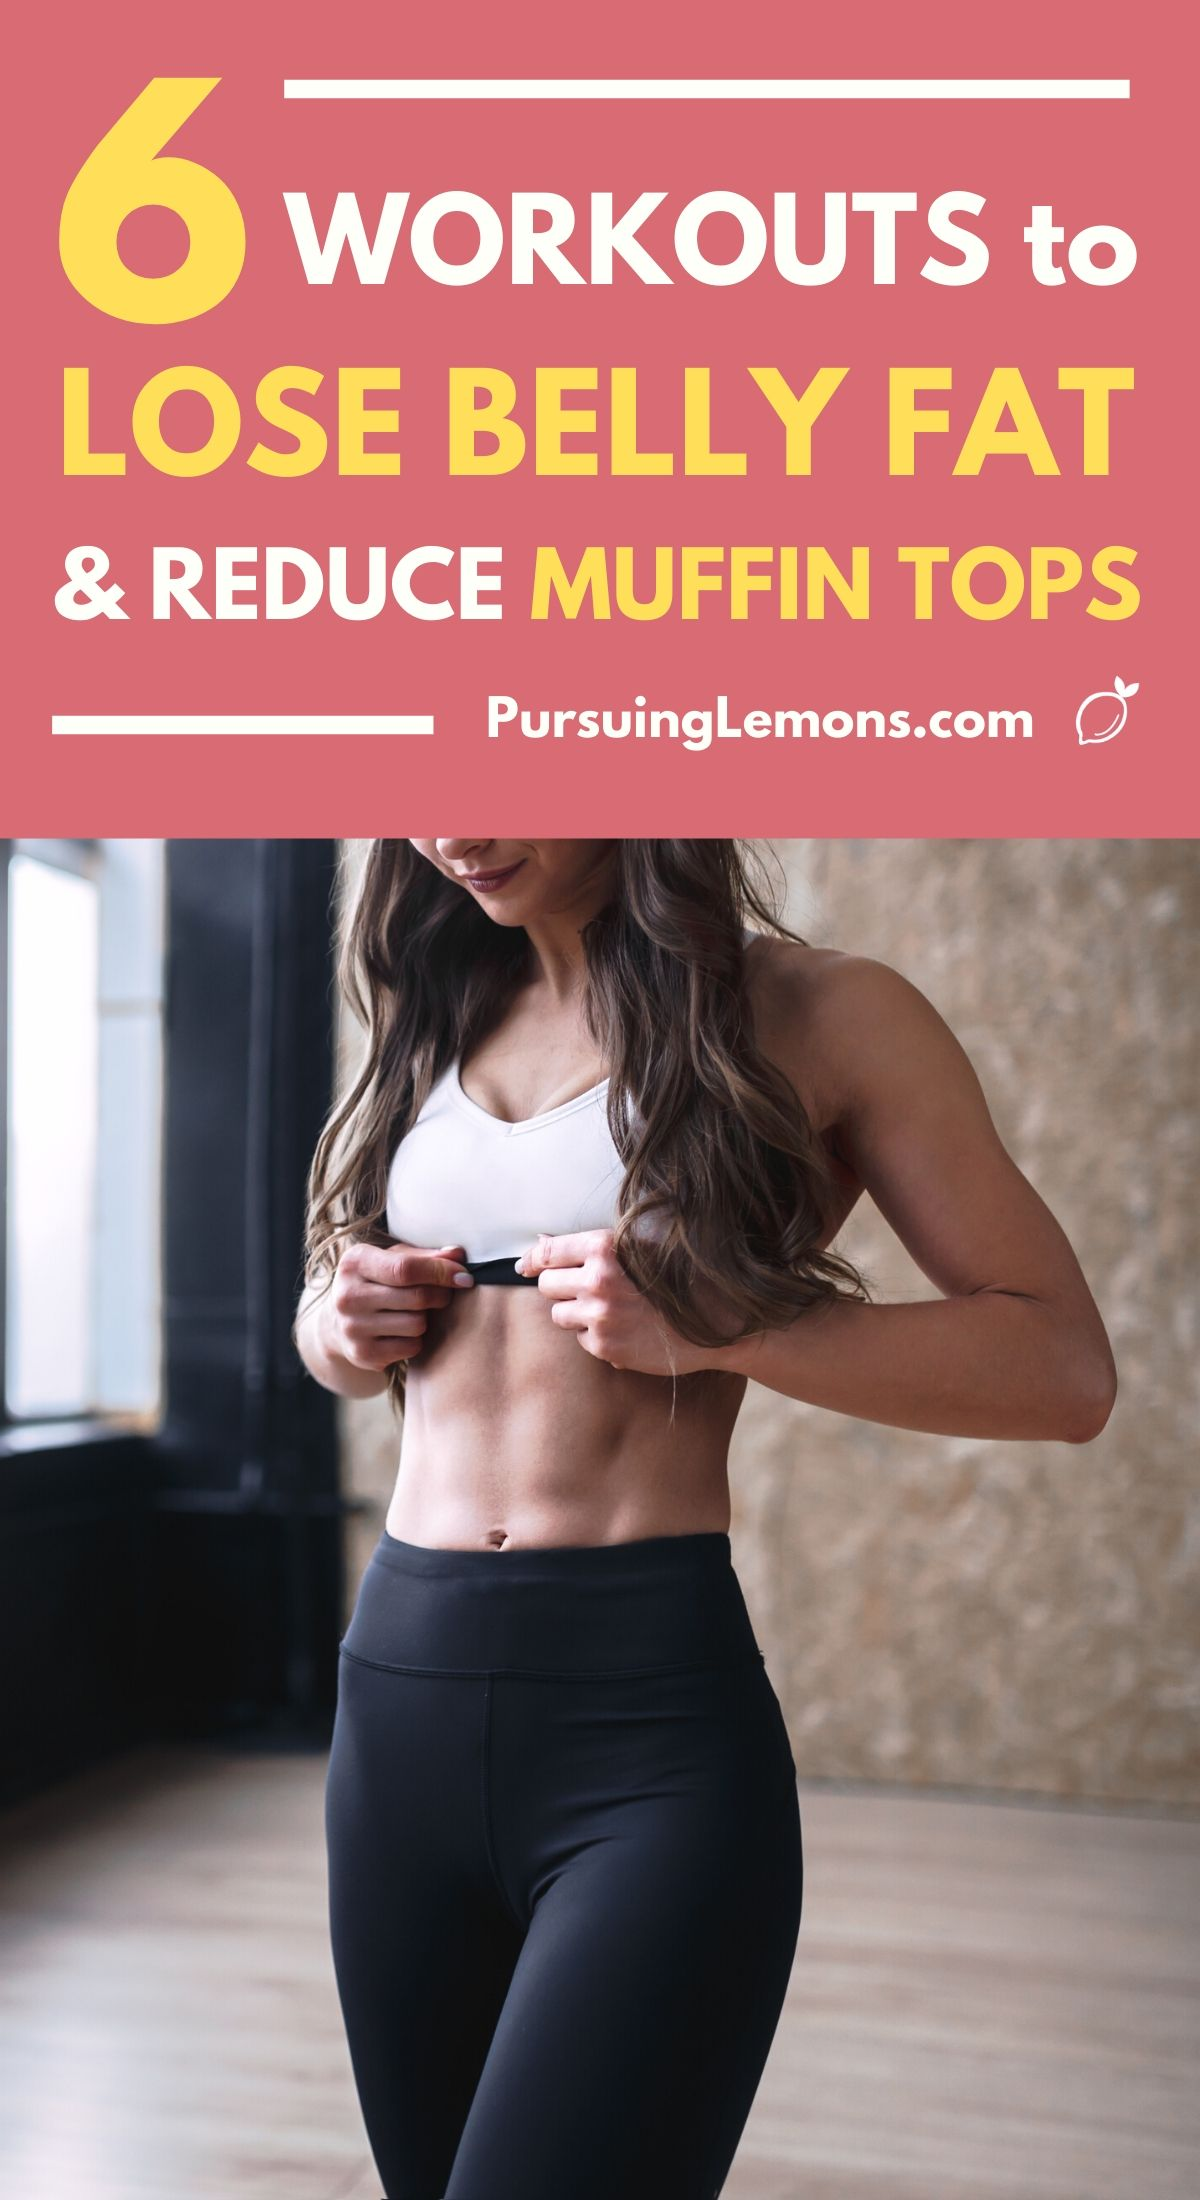 6 Workouts To Lose Belly Fats and Reduce Muffin Tops | Lose that annoying belly fat with these abs workout routines today! These core strengthening exercises you can do at home will help you start losing weight and get rid of those muffin tops! #workout #workoutathome #fitness